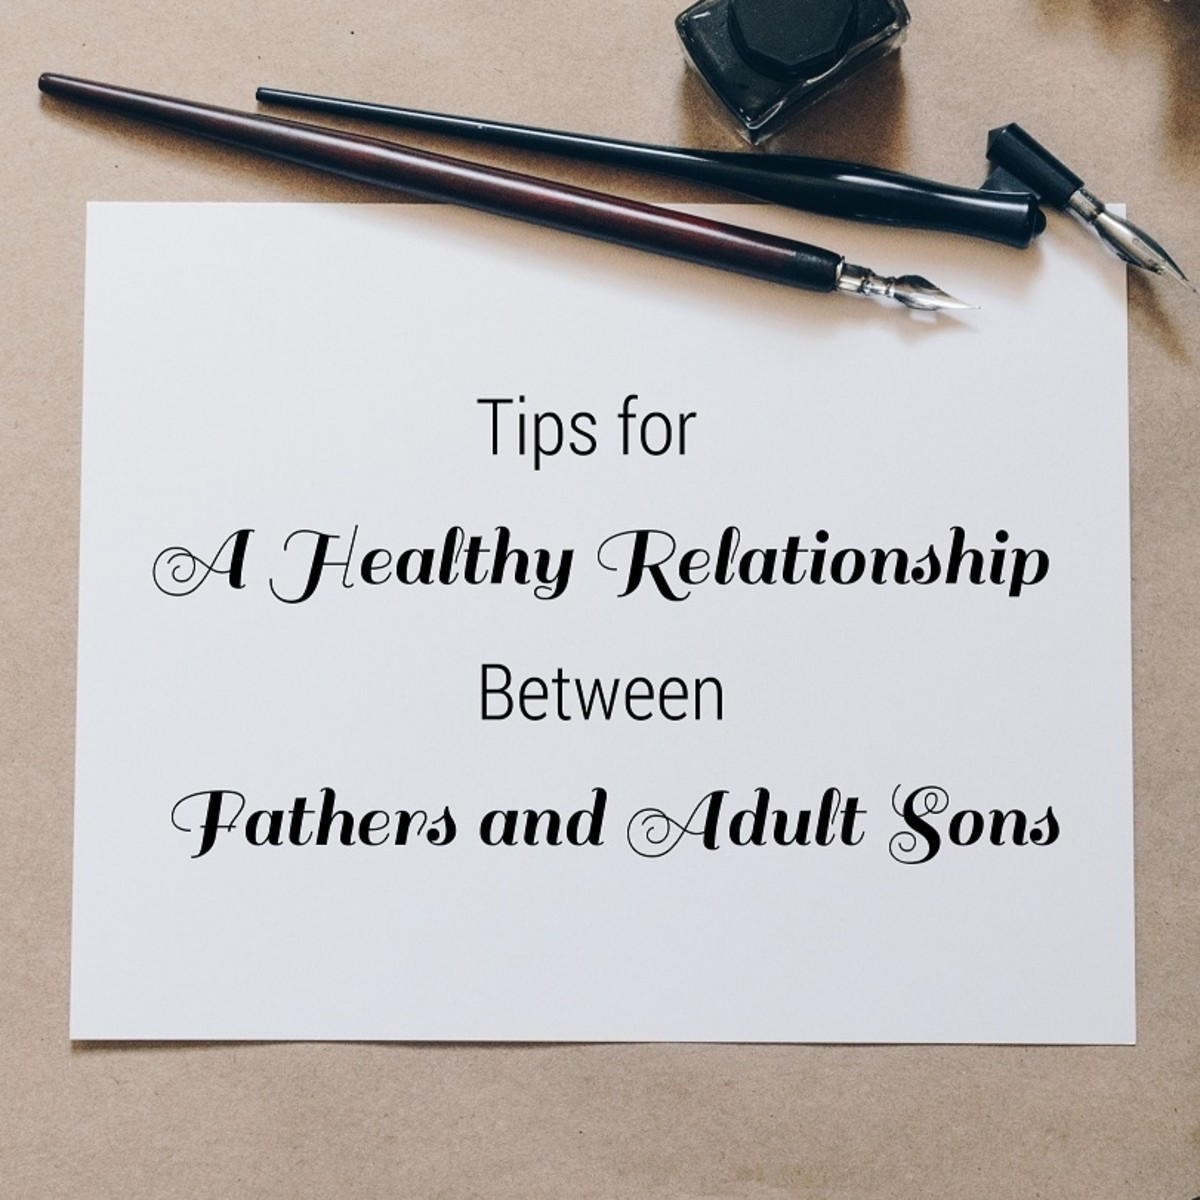 The father-son relationship has the greatest influence on the adult life of sons.